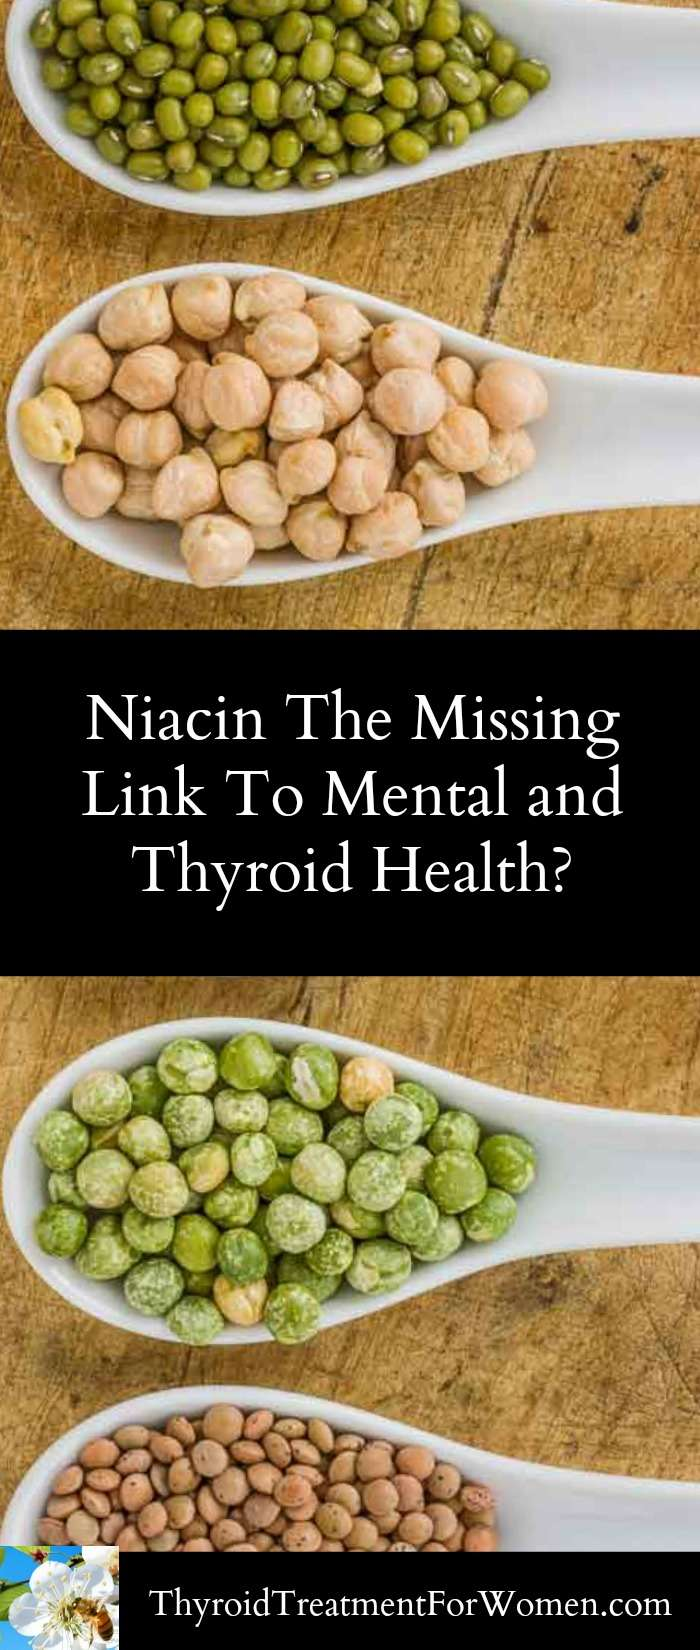 Niacin the missing link for mental and thyroid health